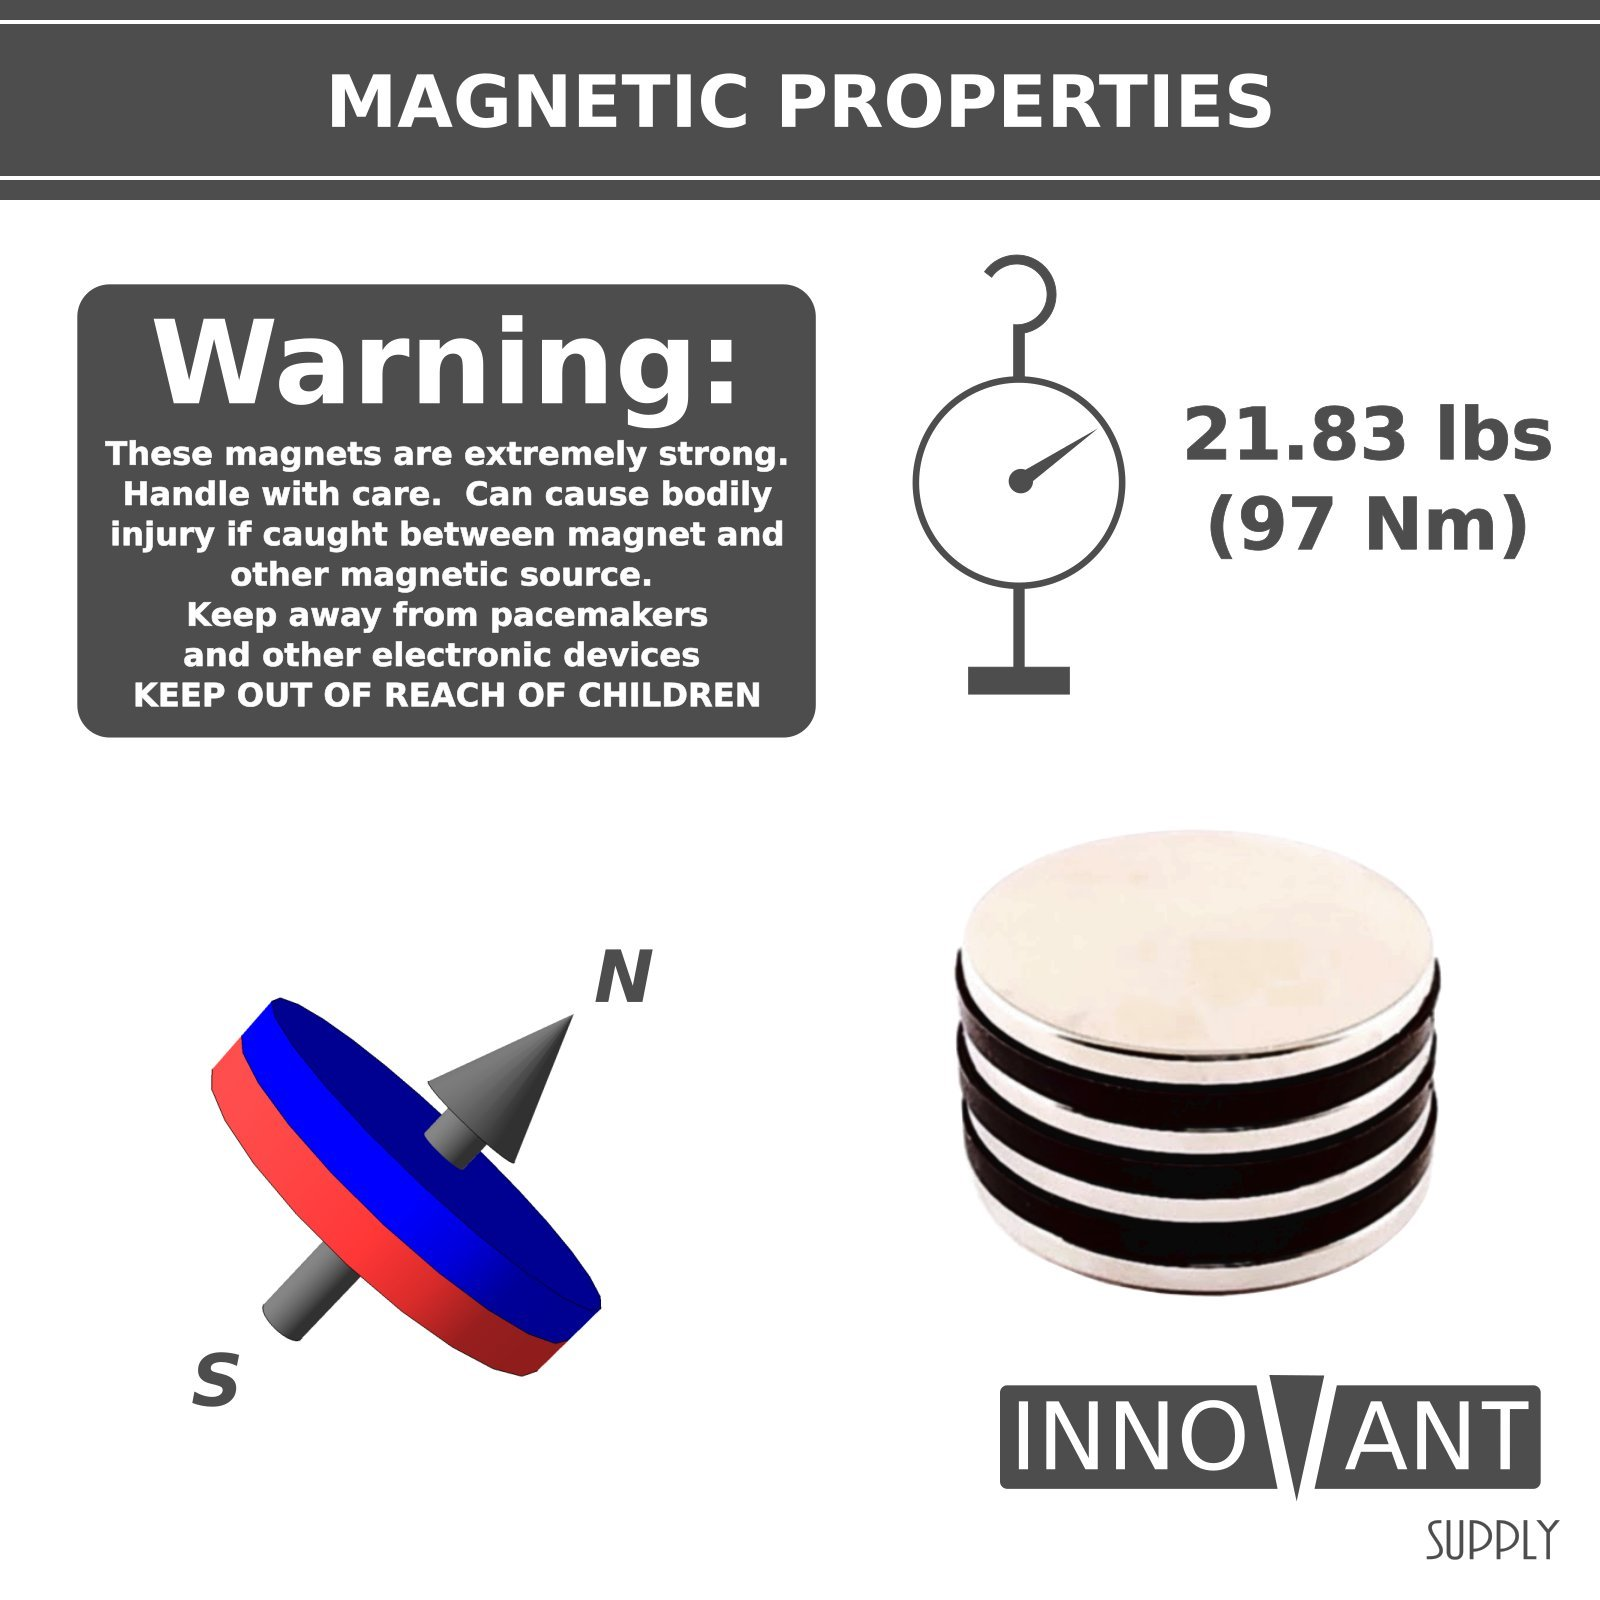 INNOVANT 4 Pack Neodymium Disc Magnets 1 1/2'' d x 1/8'' h N45 Grade Strong Permanent Rare Earth Magnets - Best for DIY Arts & Crafts Projects, School Classroom Science Project & Office or Work Supply by Innovant Supply (Image #3)